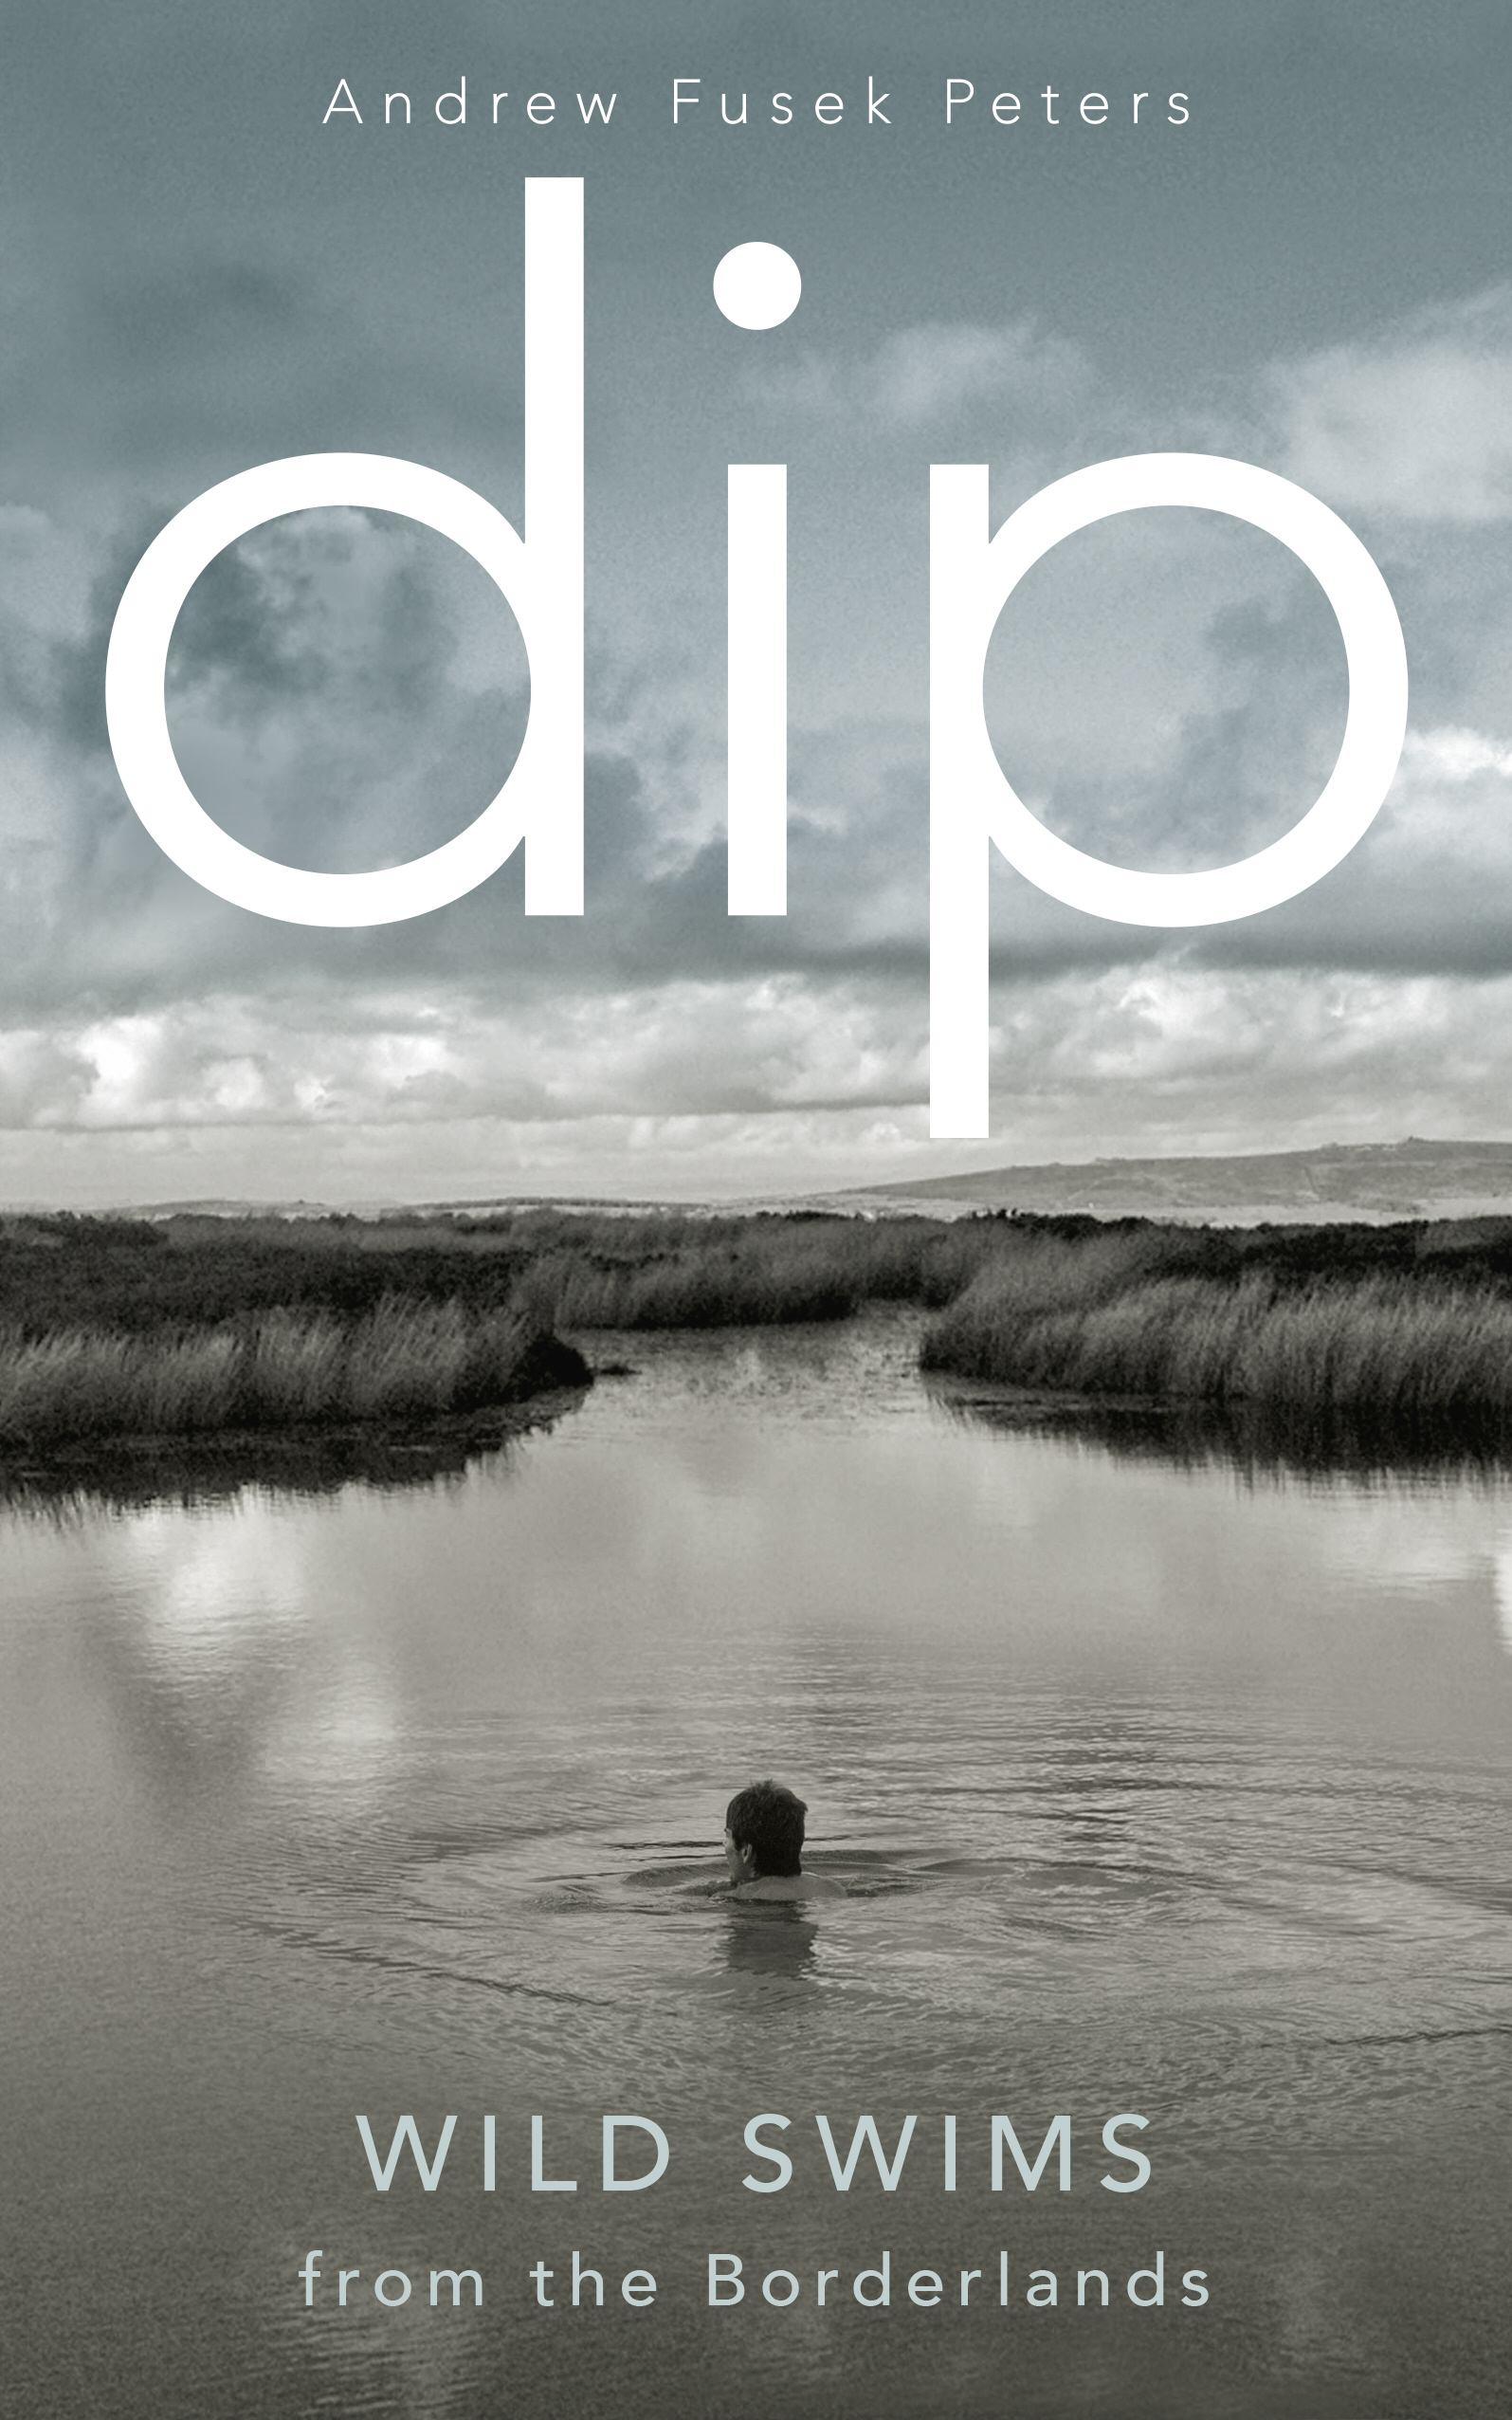 Dip Wild Swims from the Borderlands